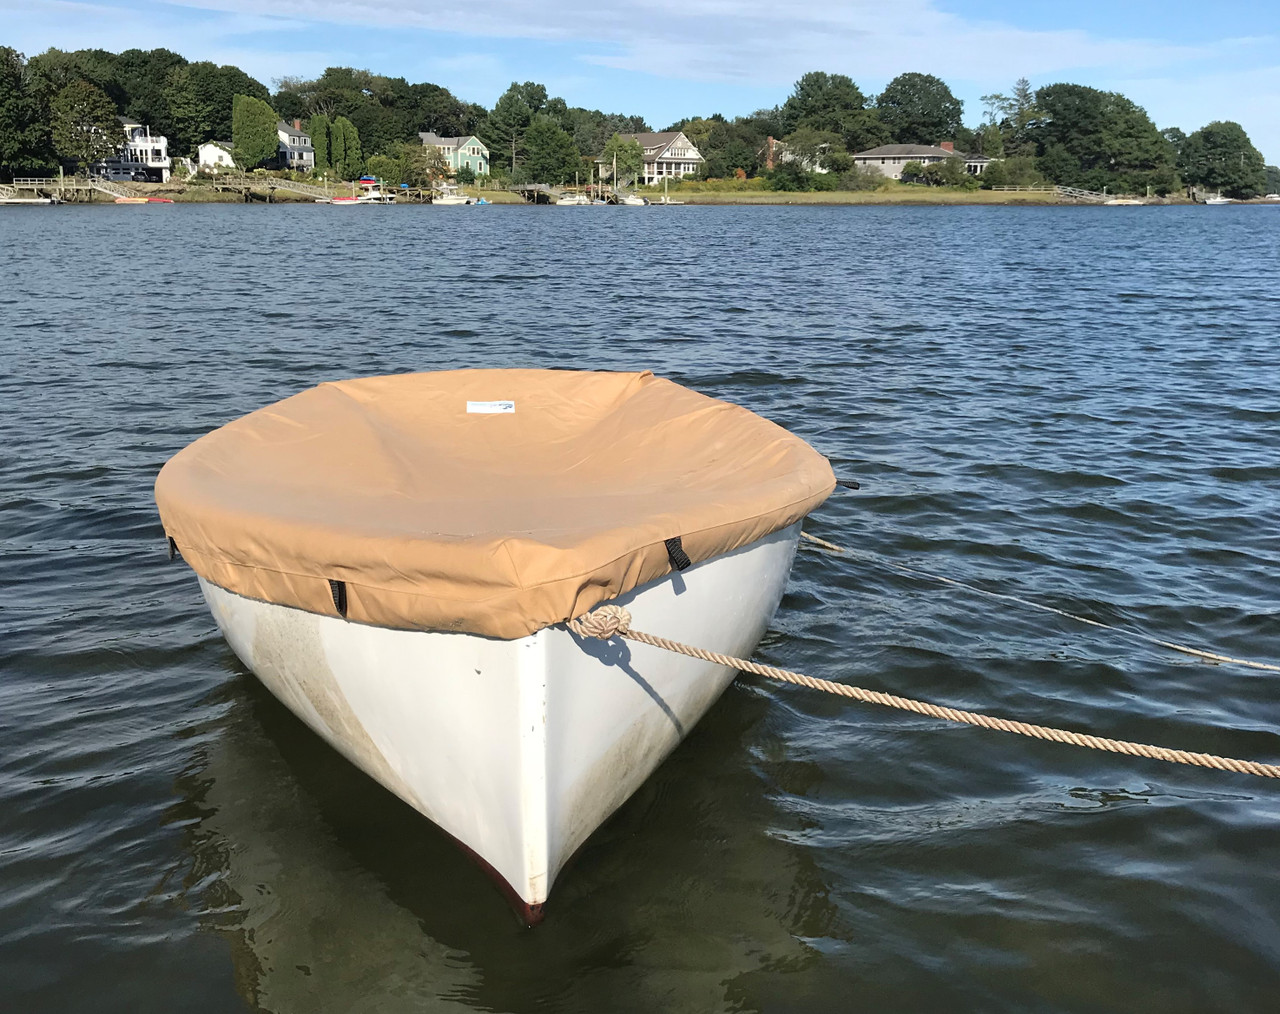 The Top Deck Boat Cover from SLO Sail and Canvas is custom tailored to perfectly fit your Dyer Dink 10 sailboat.